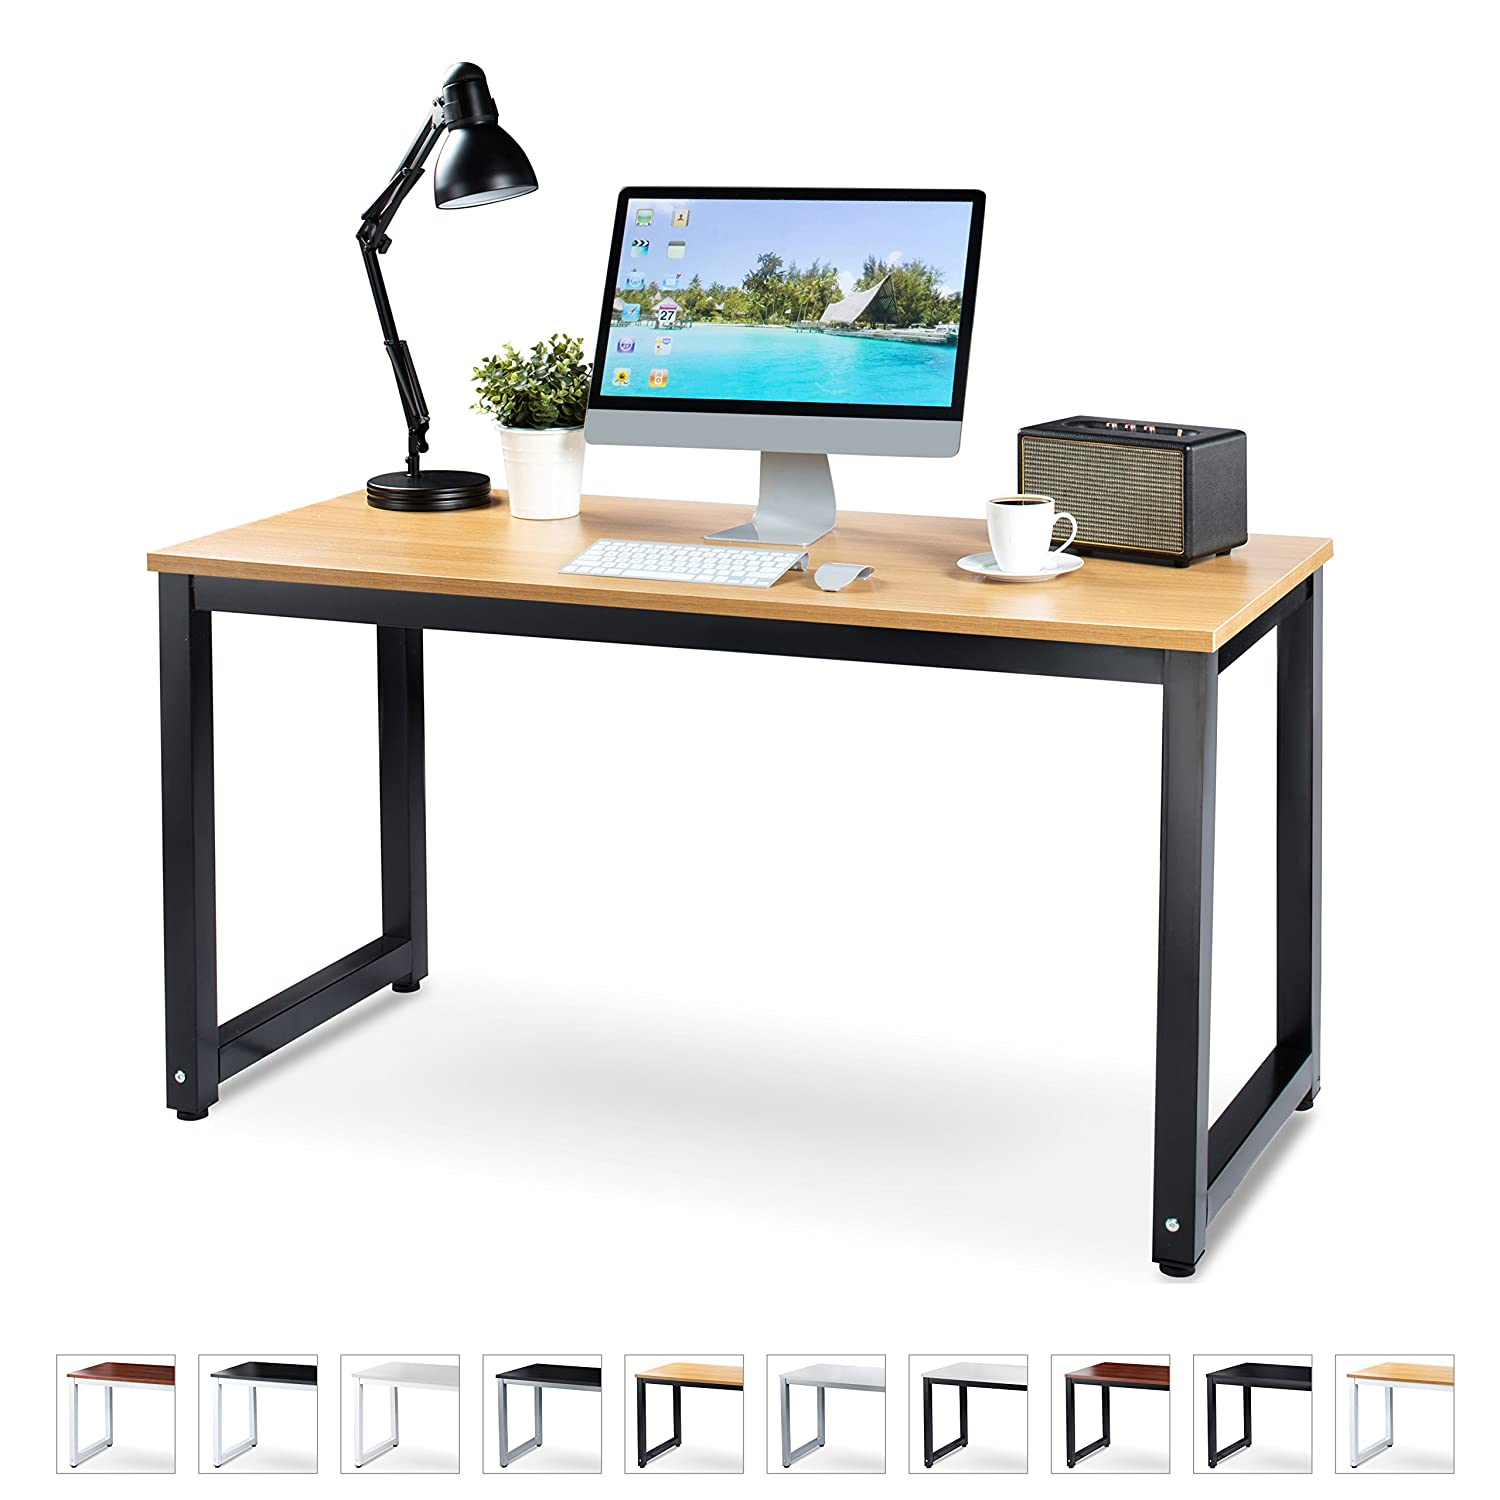 "Office Computer Desk – 55"" Teak Laminated Wooden Particleboard Table and Black Powder Coated Steel Frame - Easy Assembly - Work or Home - Tools and Instructions Included – by Luxxetta"